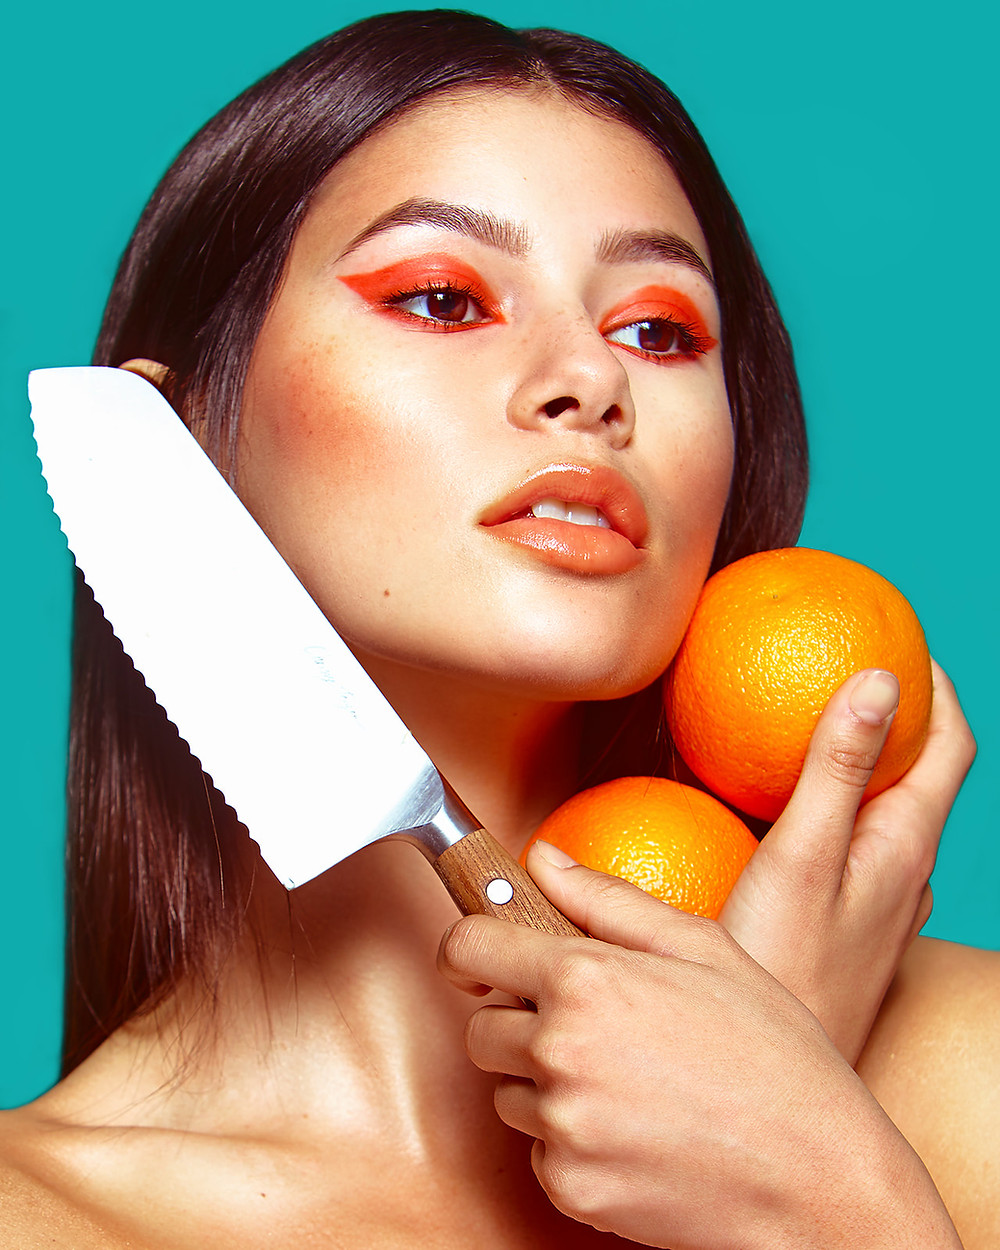 Model Genevieve van Dam holds oranges and a knife in a fruit-inspired beauty editorial photo shoot published in New Face Fashion Magazine and photographed by commercial and fashion photographer Patrick Patton.